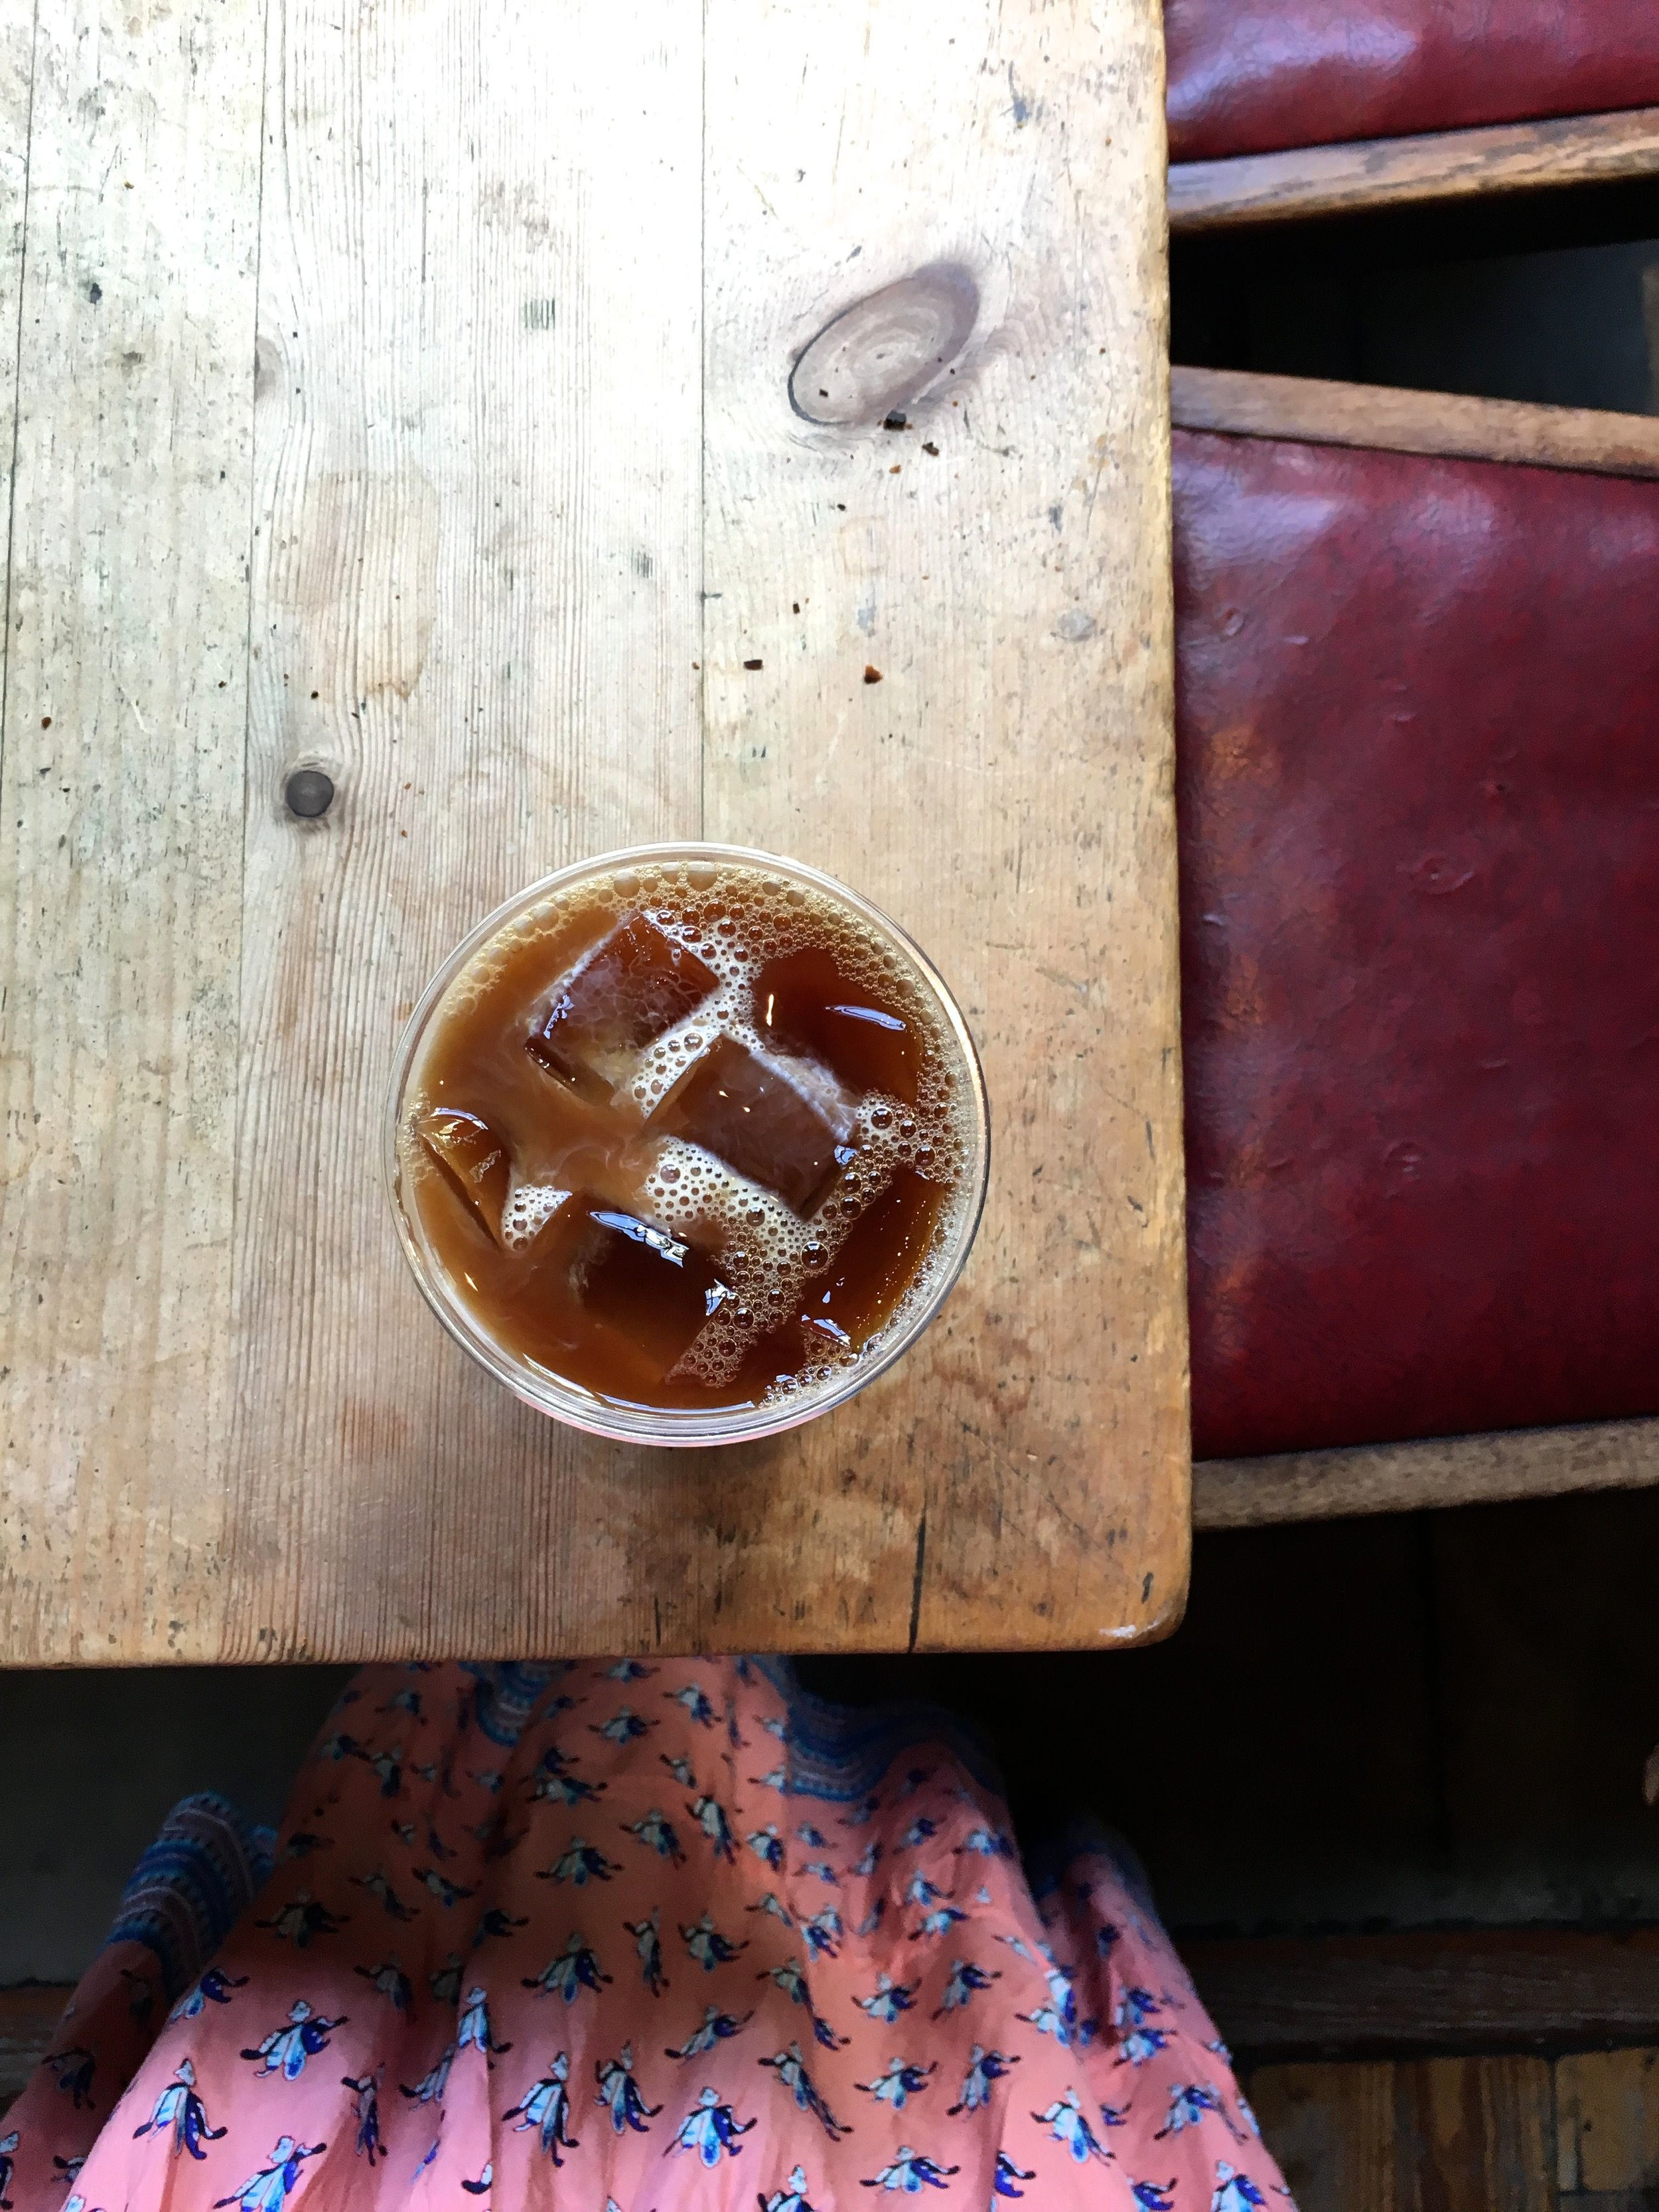 My beverage?You got it. Iced coffee. -